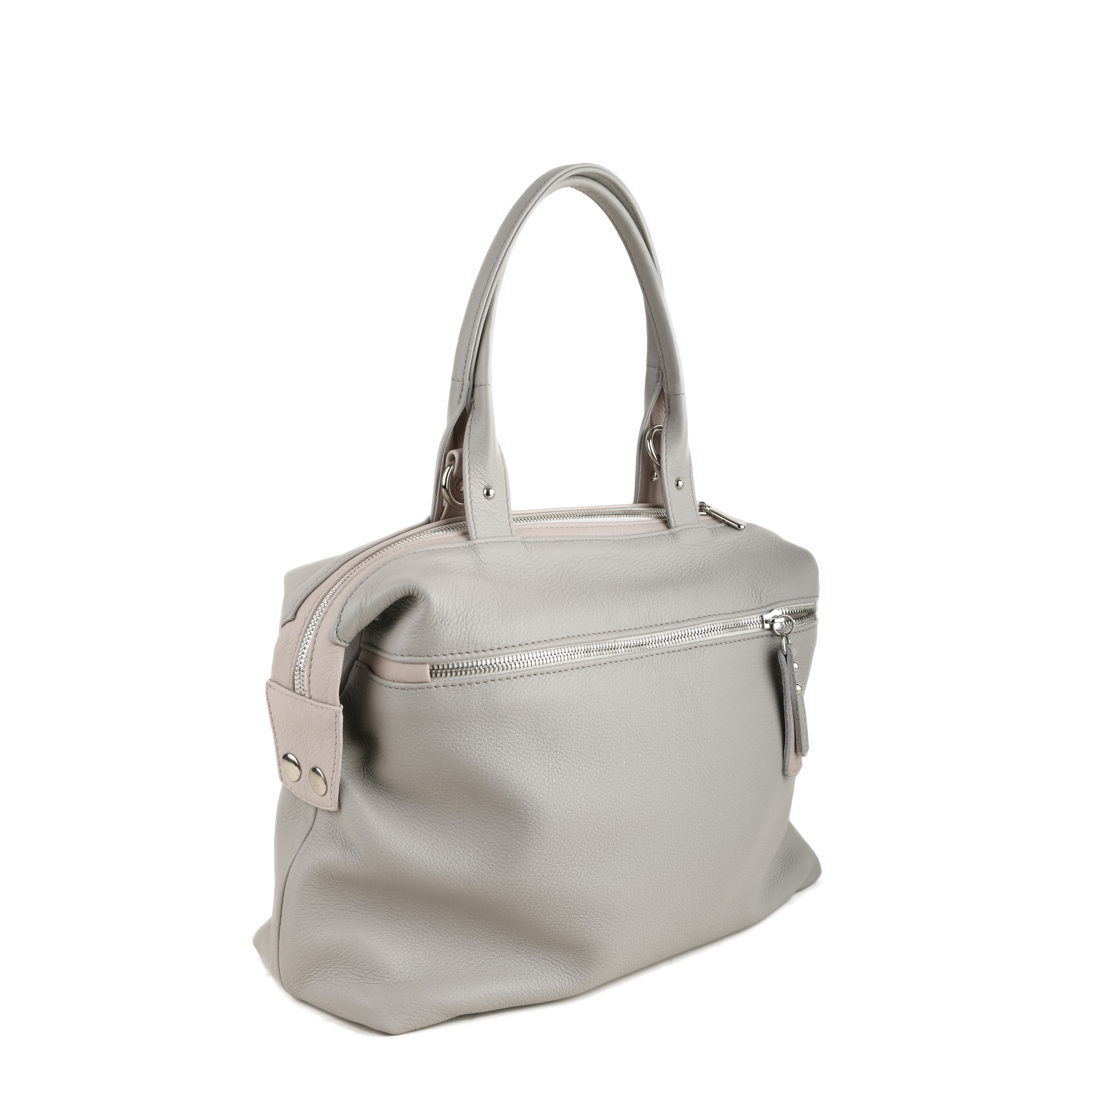 Grace Plaster Leather Tote Bag